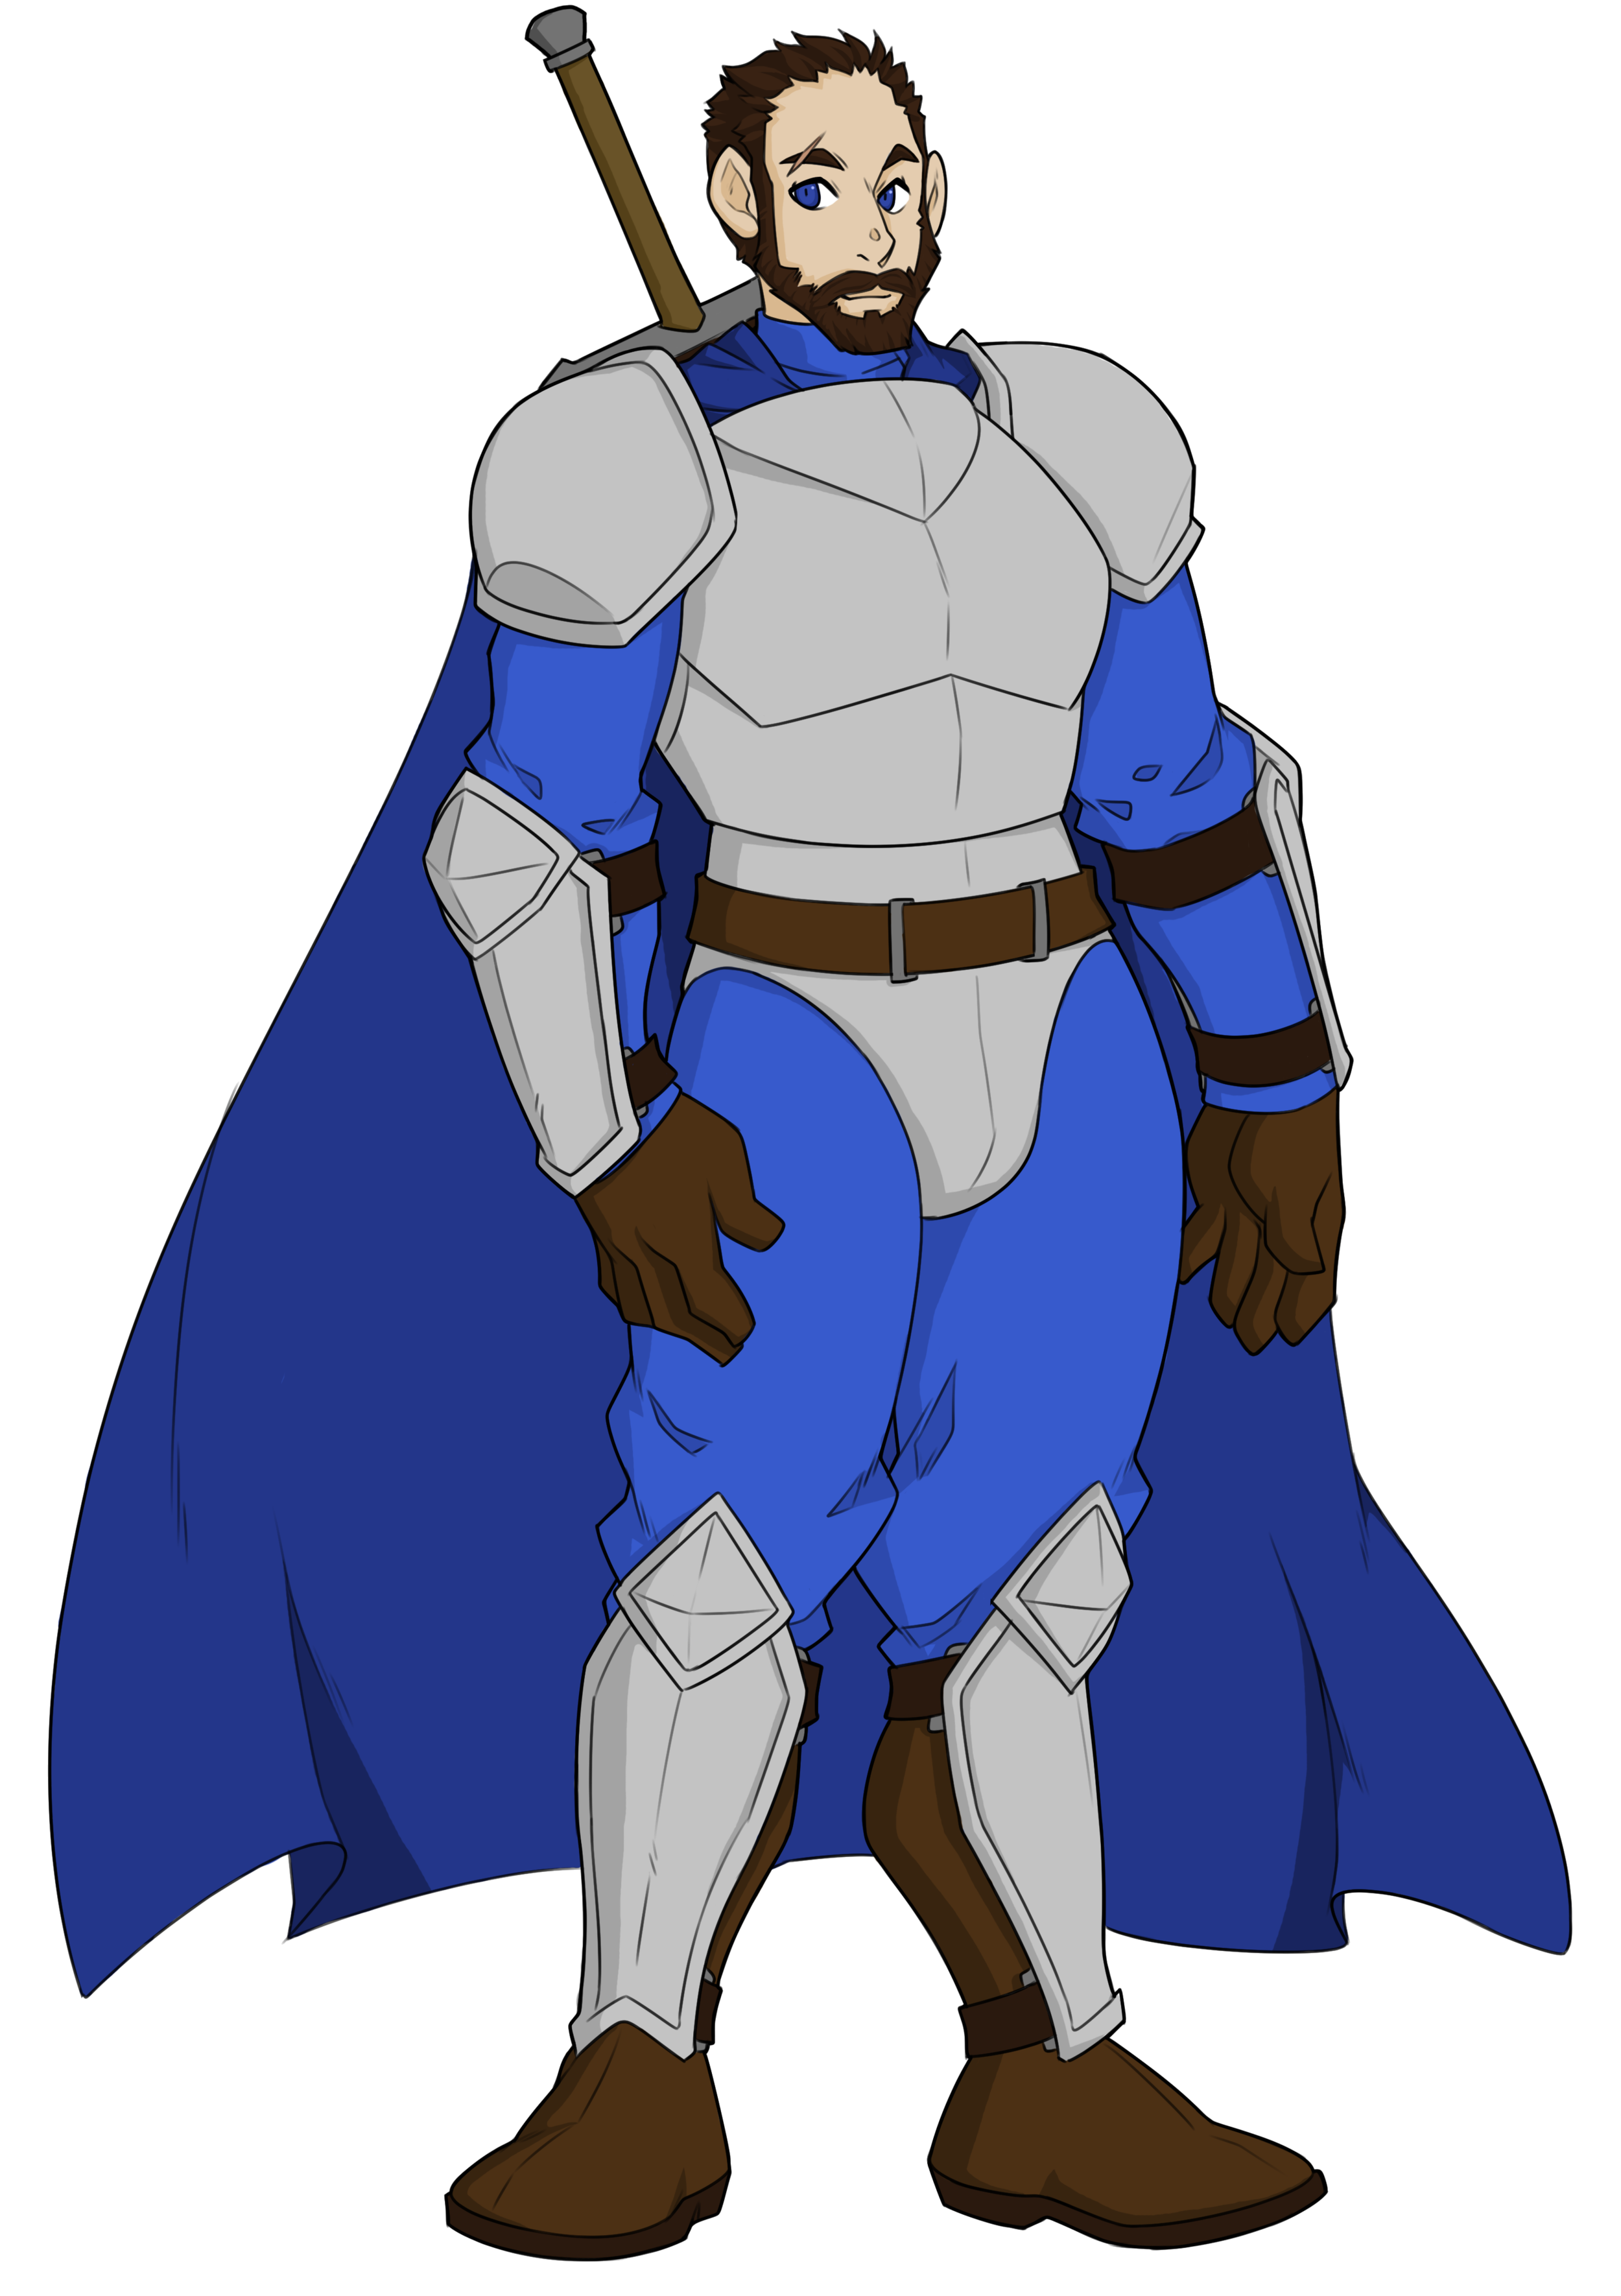 Dolvis - Class: SoldierAge: 22Hometown: DelladorDolvis is a capable swordsman and ends up joining the party as a helping hand when things go awry. He is usually a messenger of sorts between Dellador and the villages near it.